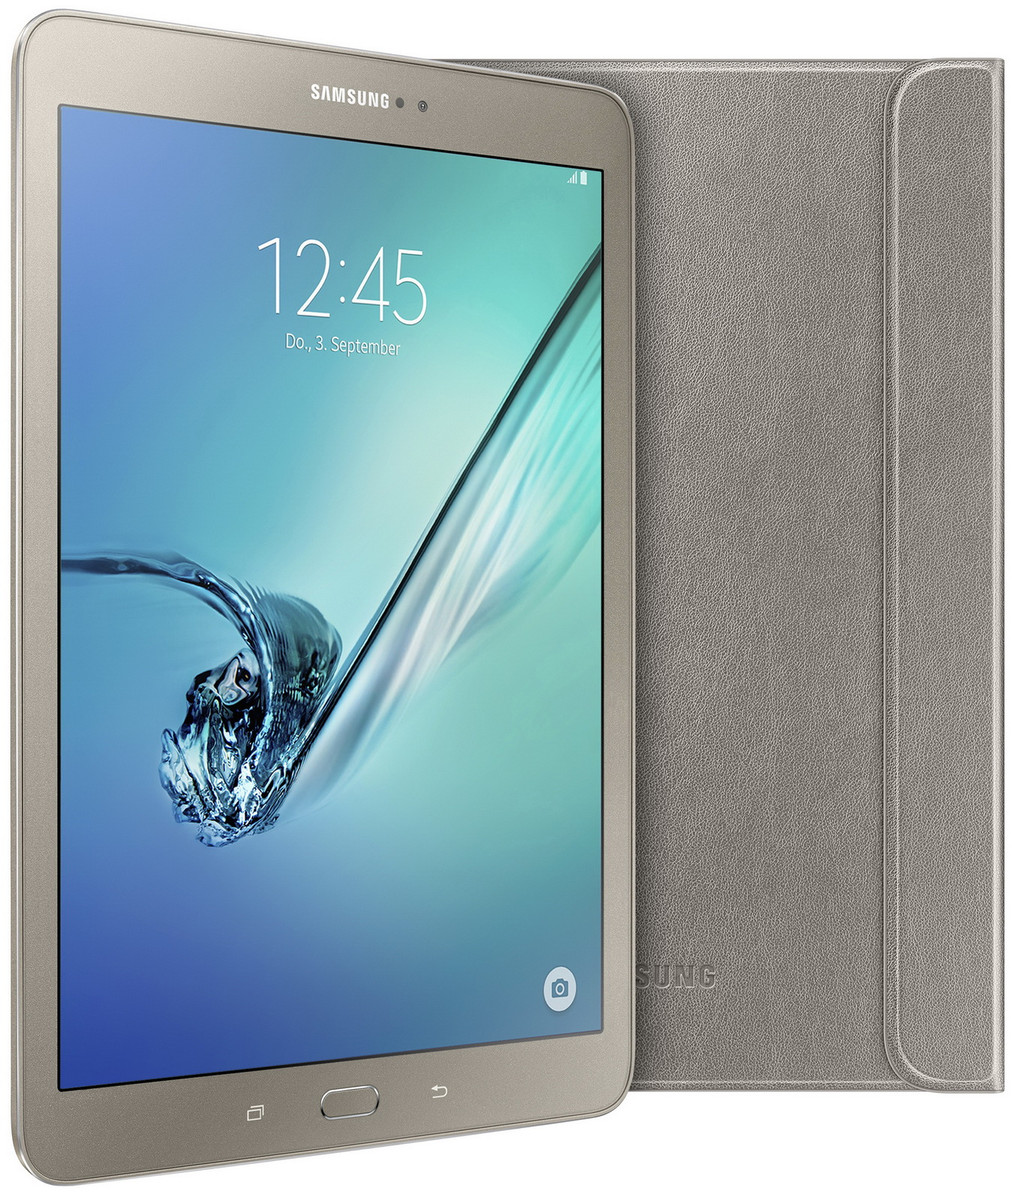 Galaxy Tab 9.7 Samsung Galaxy Tab 9 7 S2 Now Available In Gold With Matching